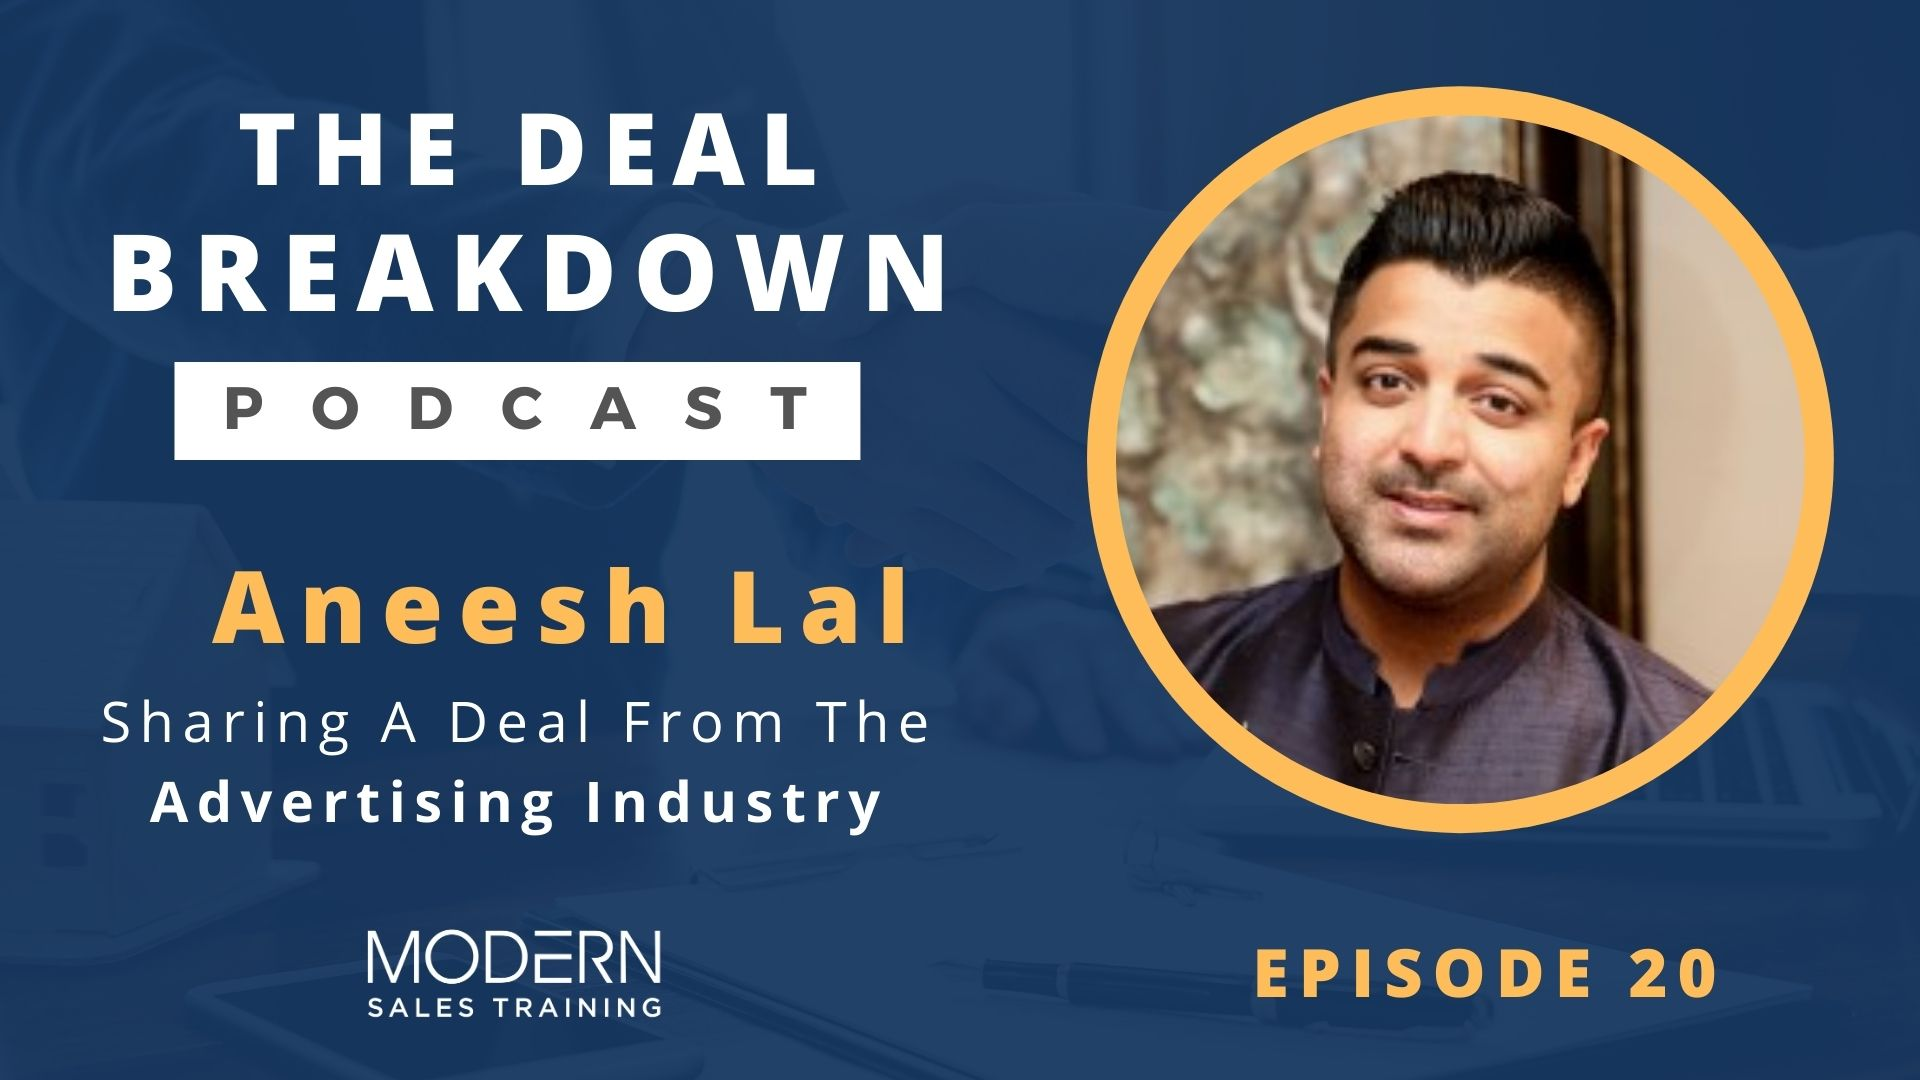 The-Deal-Breakdown-Podcast-Modern-Sales-Training-Aneesh-Lal